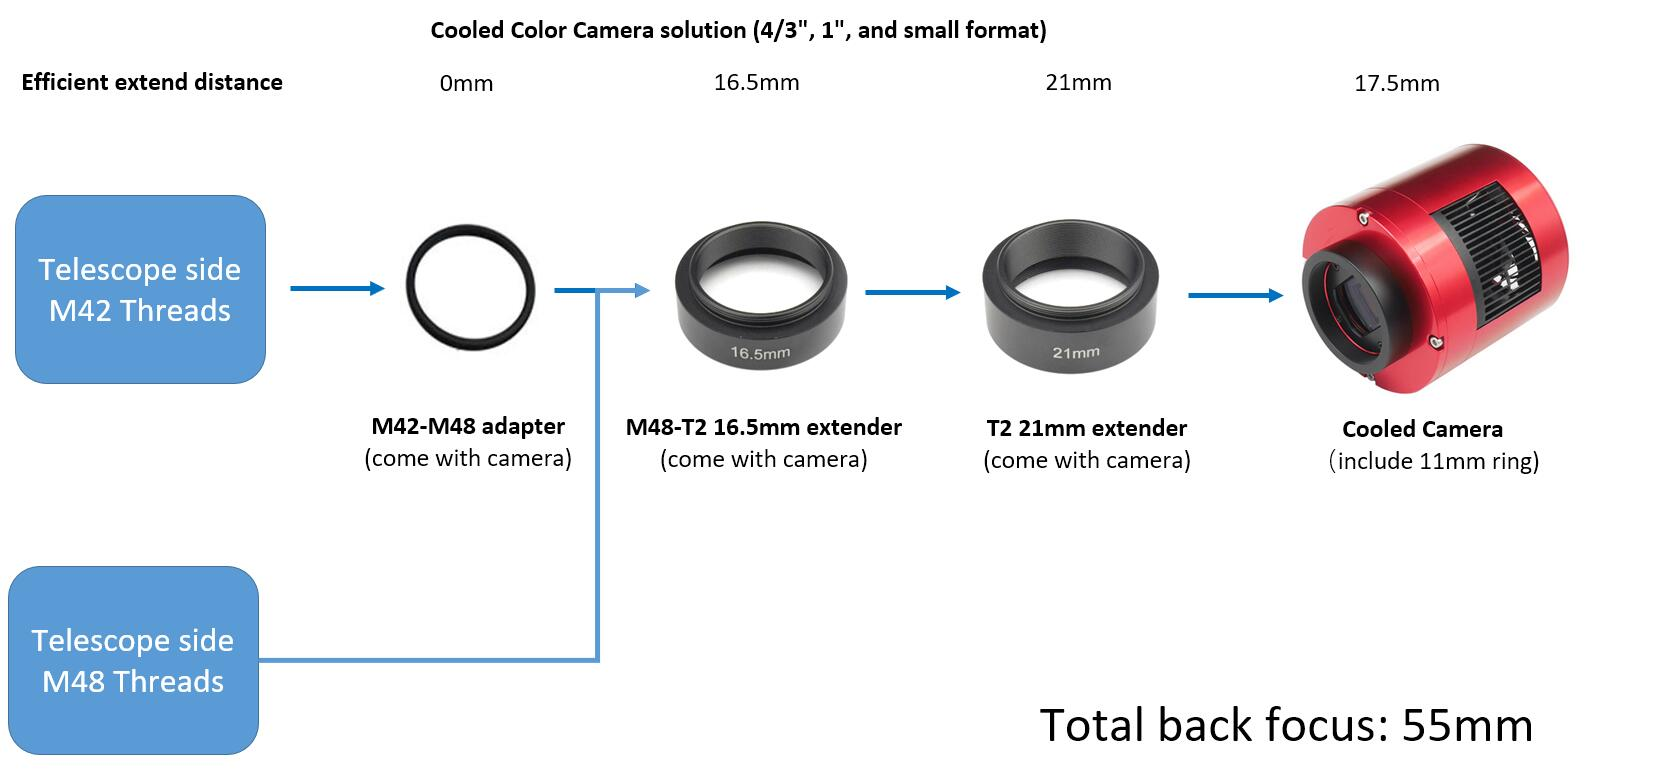 Cooled-Color-Camera-solution.jpg?fbclid=